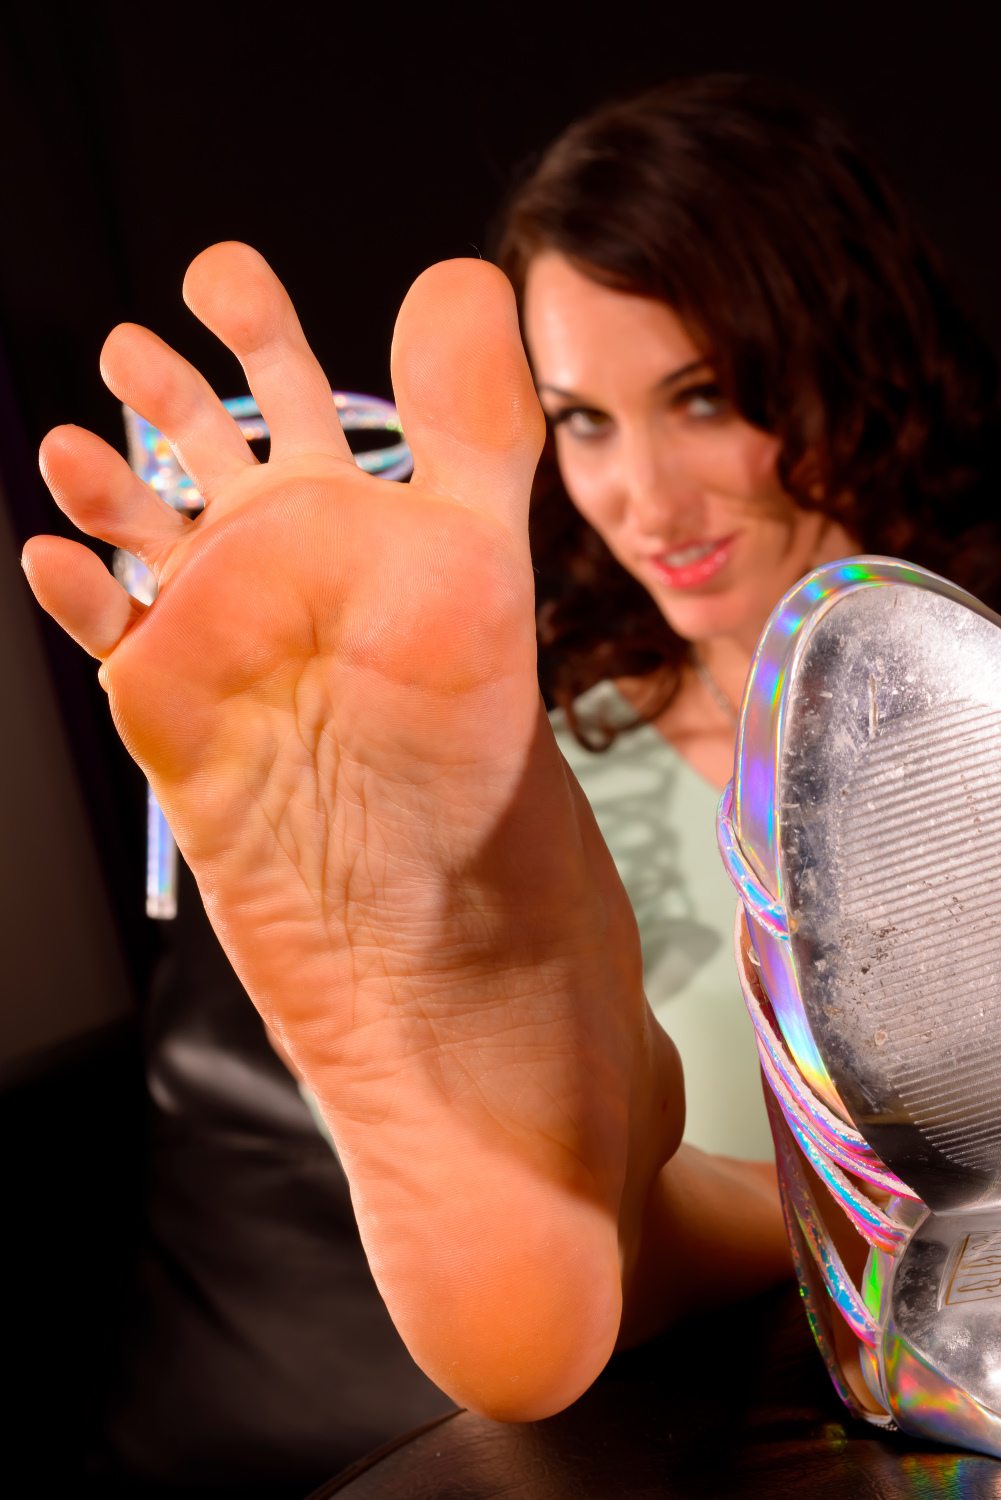 New Video  2014 Footnight Breakout Model Award Winner Maroe  Footnight  Foot Parties  Foot